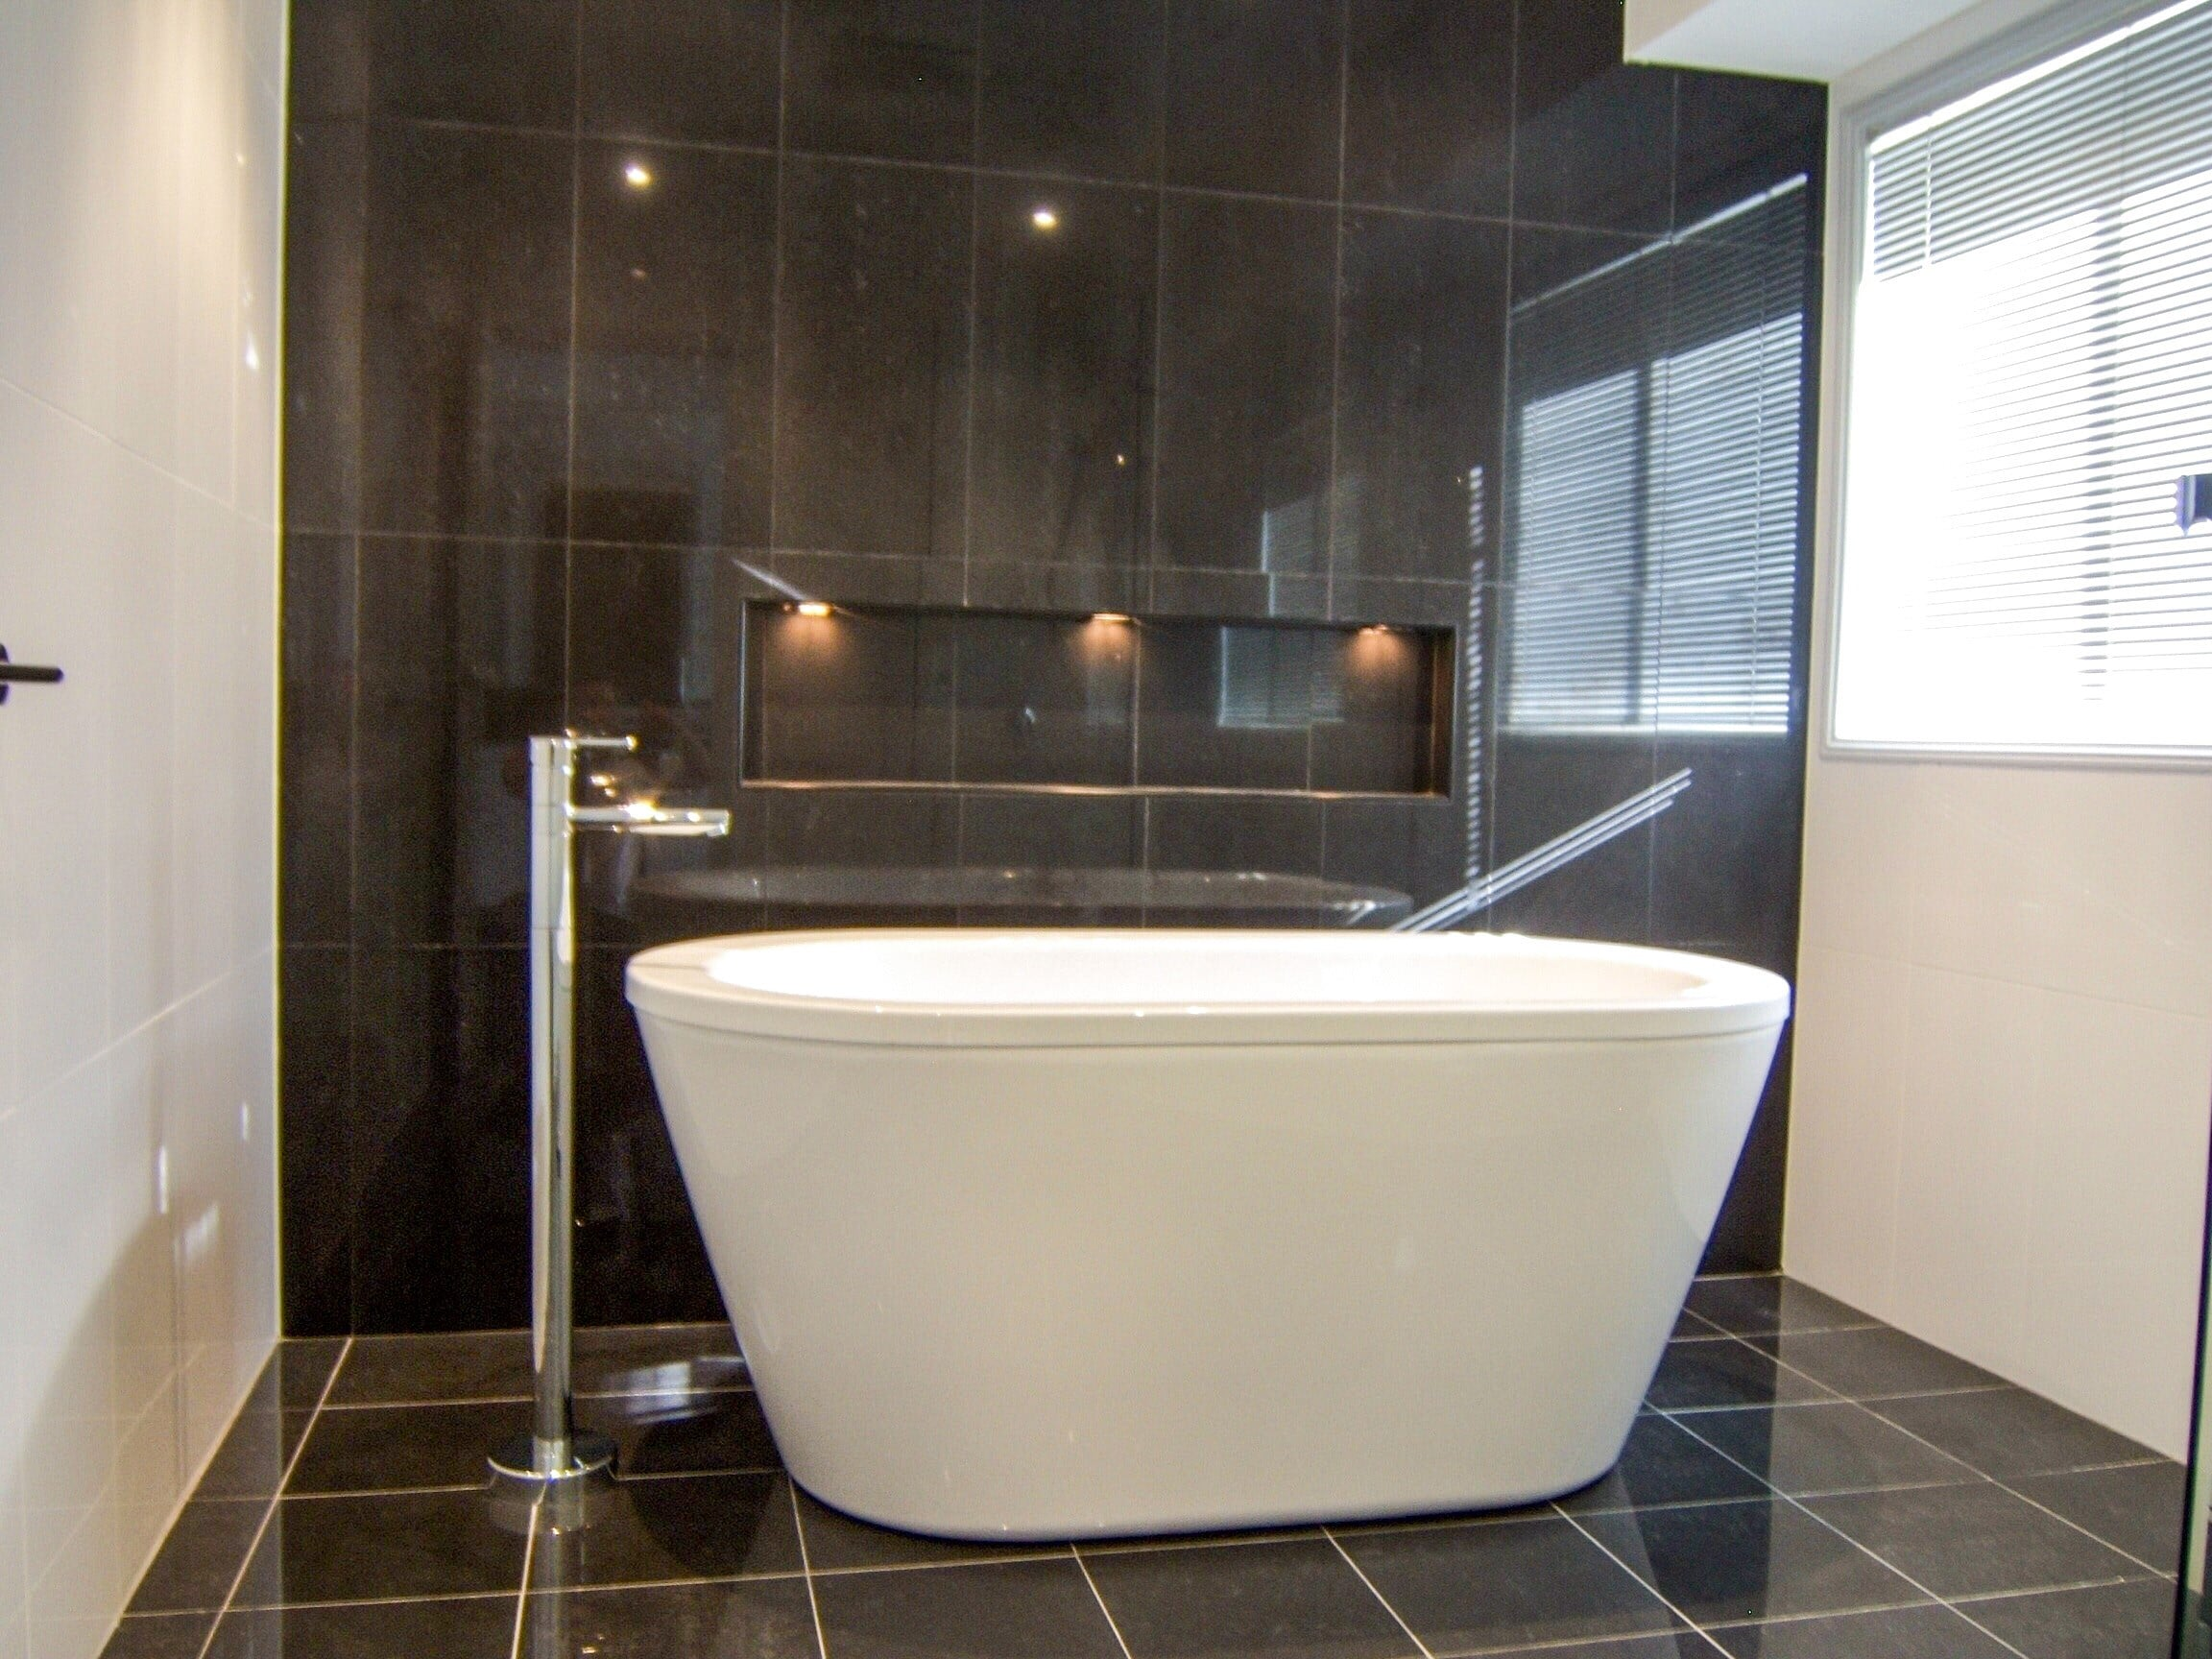 Master bathrooms kitchens on castle hill nsw 2154 whereis Bathroom design and renovation castle hill